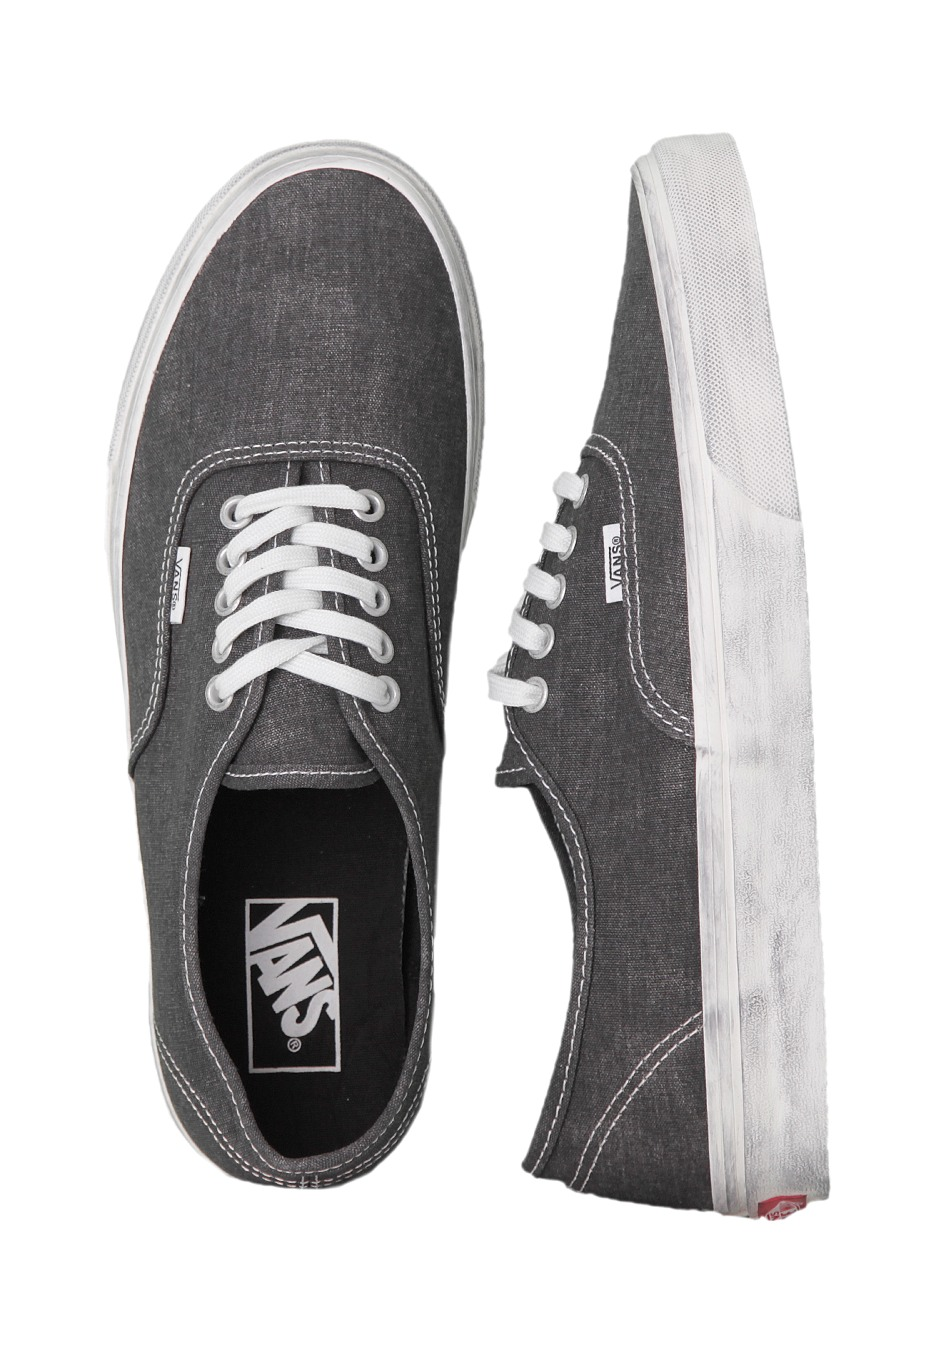 Vans - Authentic Overwashed - Girl Shoes - Vans shoes - Shoes ...